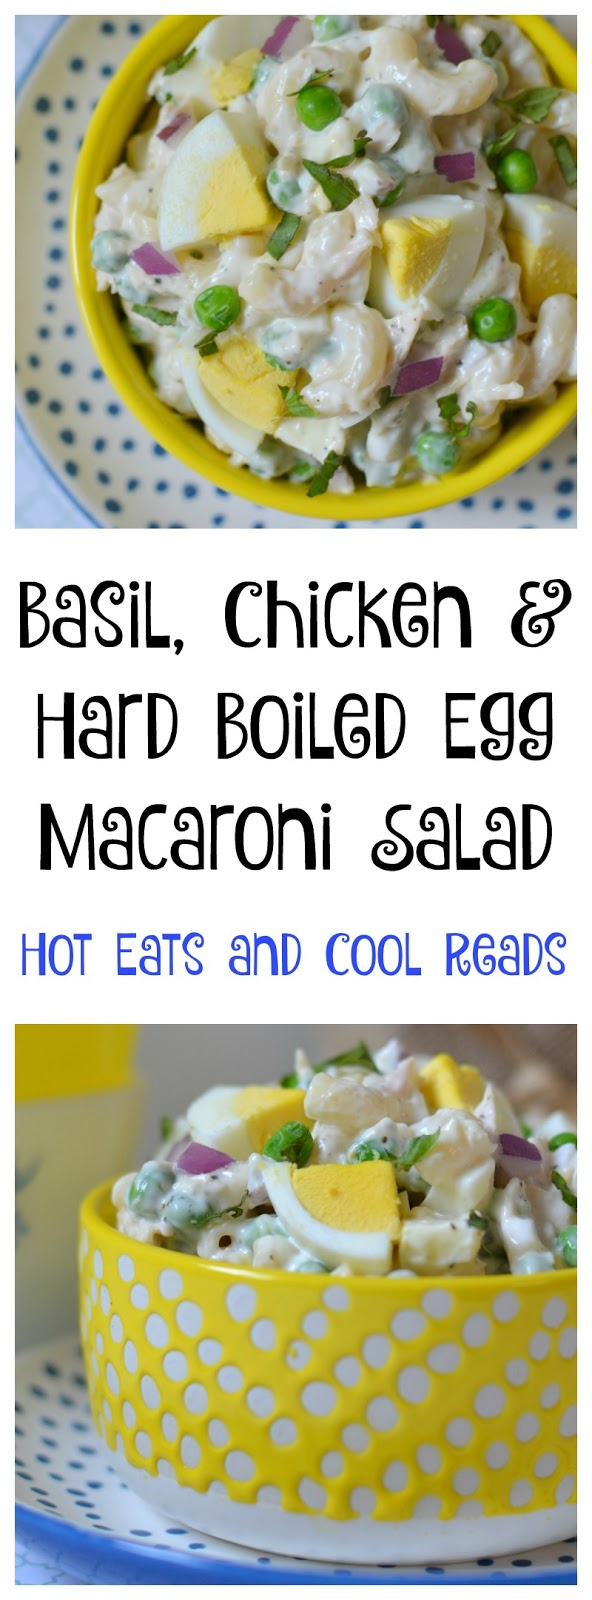 Hot Eats And Cool Reads Basil Chicken And Hard Boiled Egg Macaroni Salad Recipe Plus 7 Other Amazing Chicken Recipes